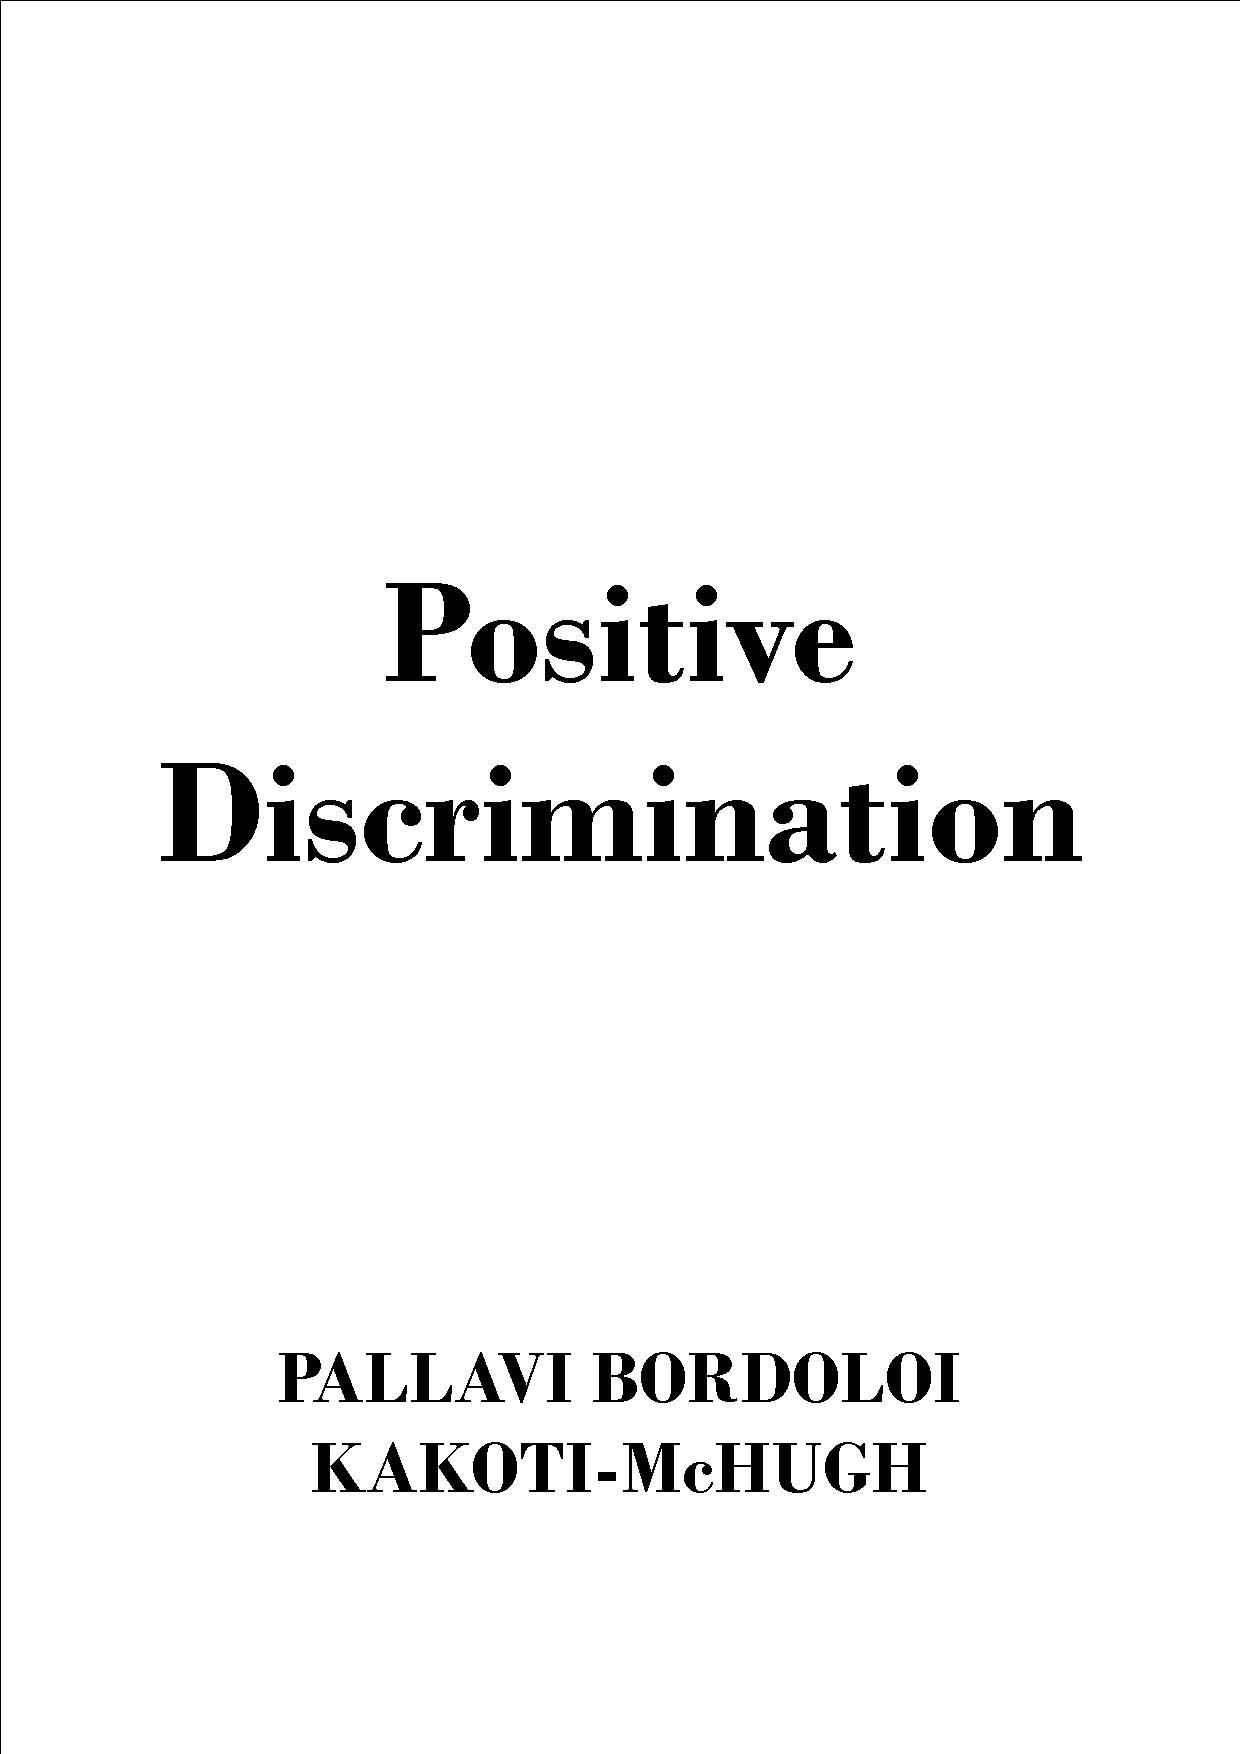 Positive-Discrimination-mizan